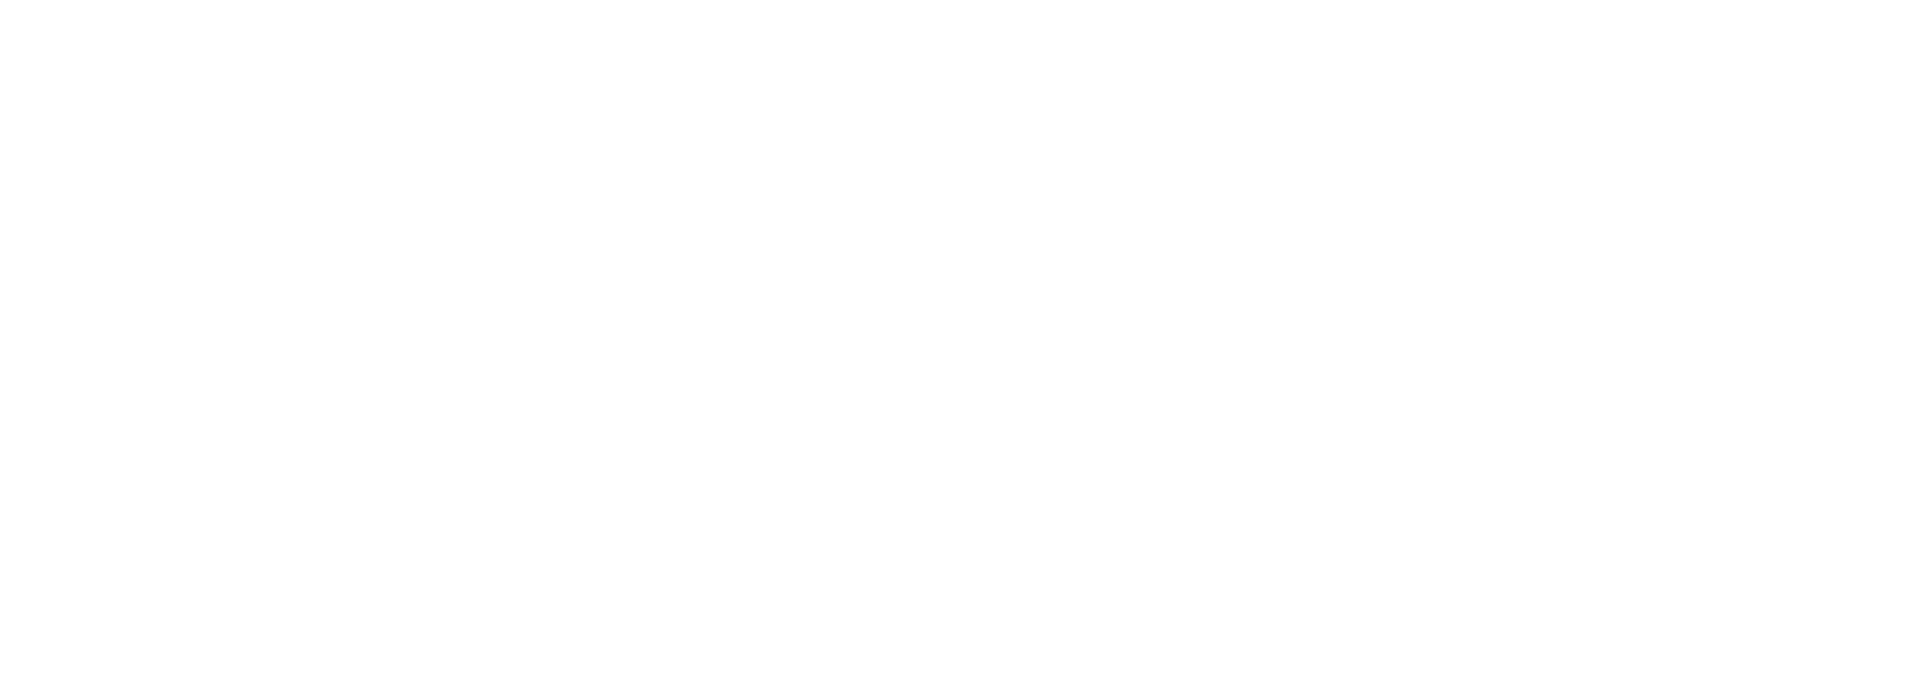 Ibrox Property Management Logo png